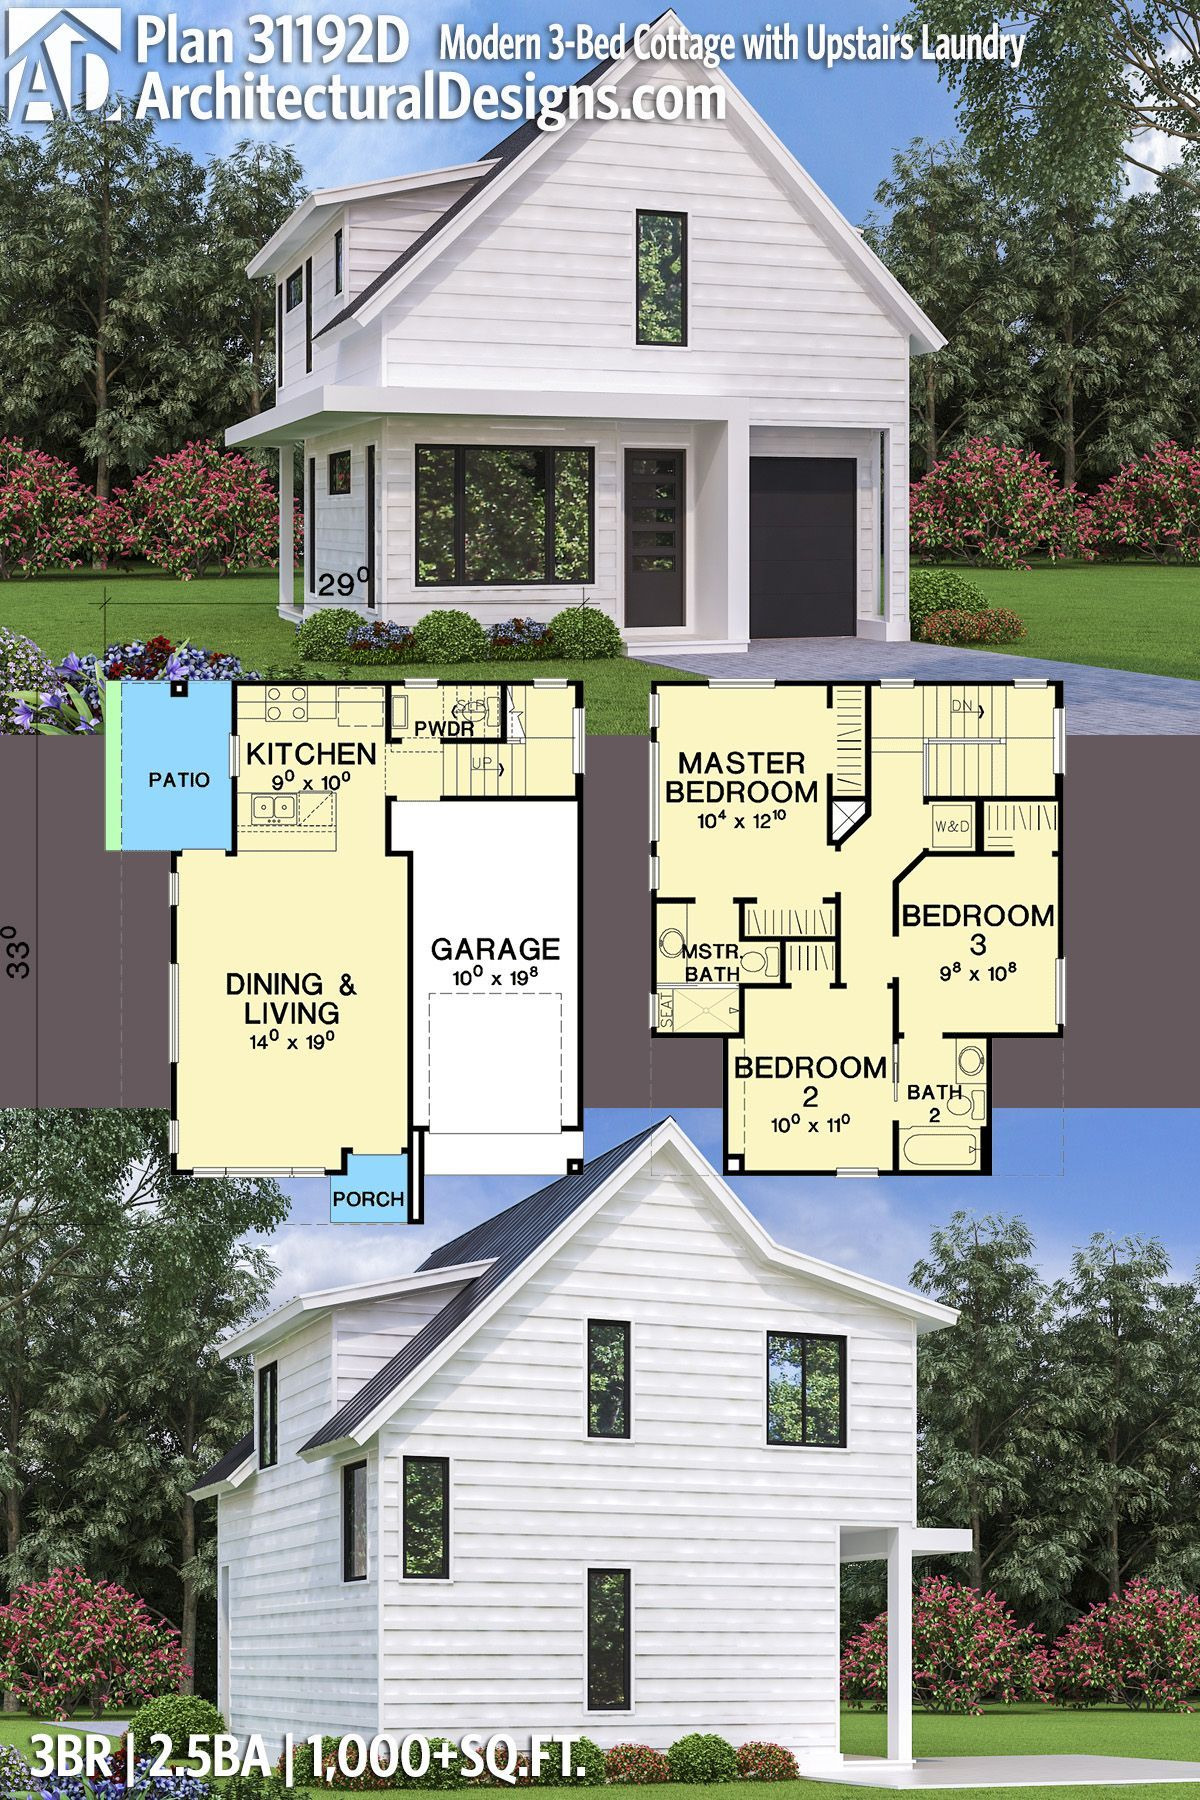 Small Modern Cottage House Plans Luxury Architectural Designs Modern Cottage House Plan D Gibt